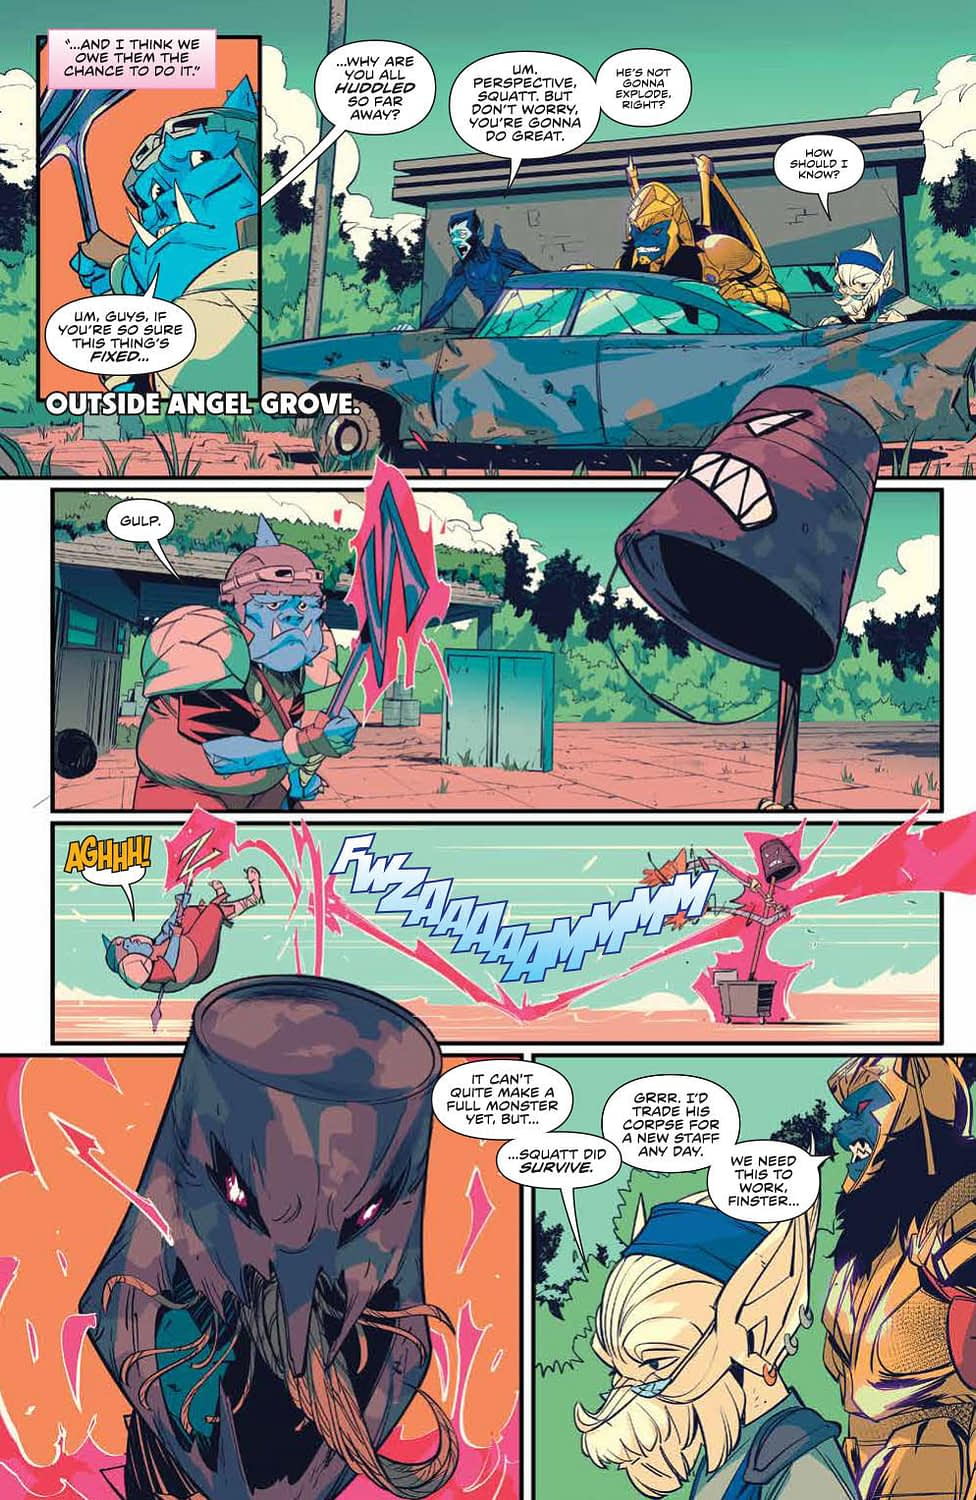 Power Rangers #46 [Preview]